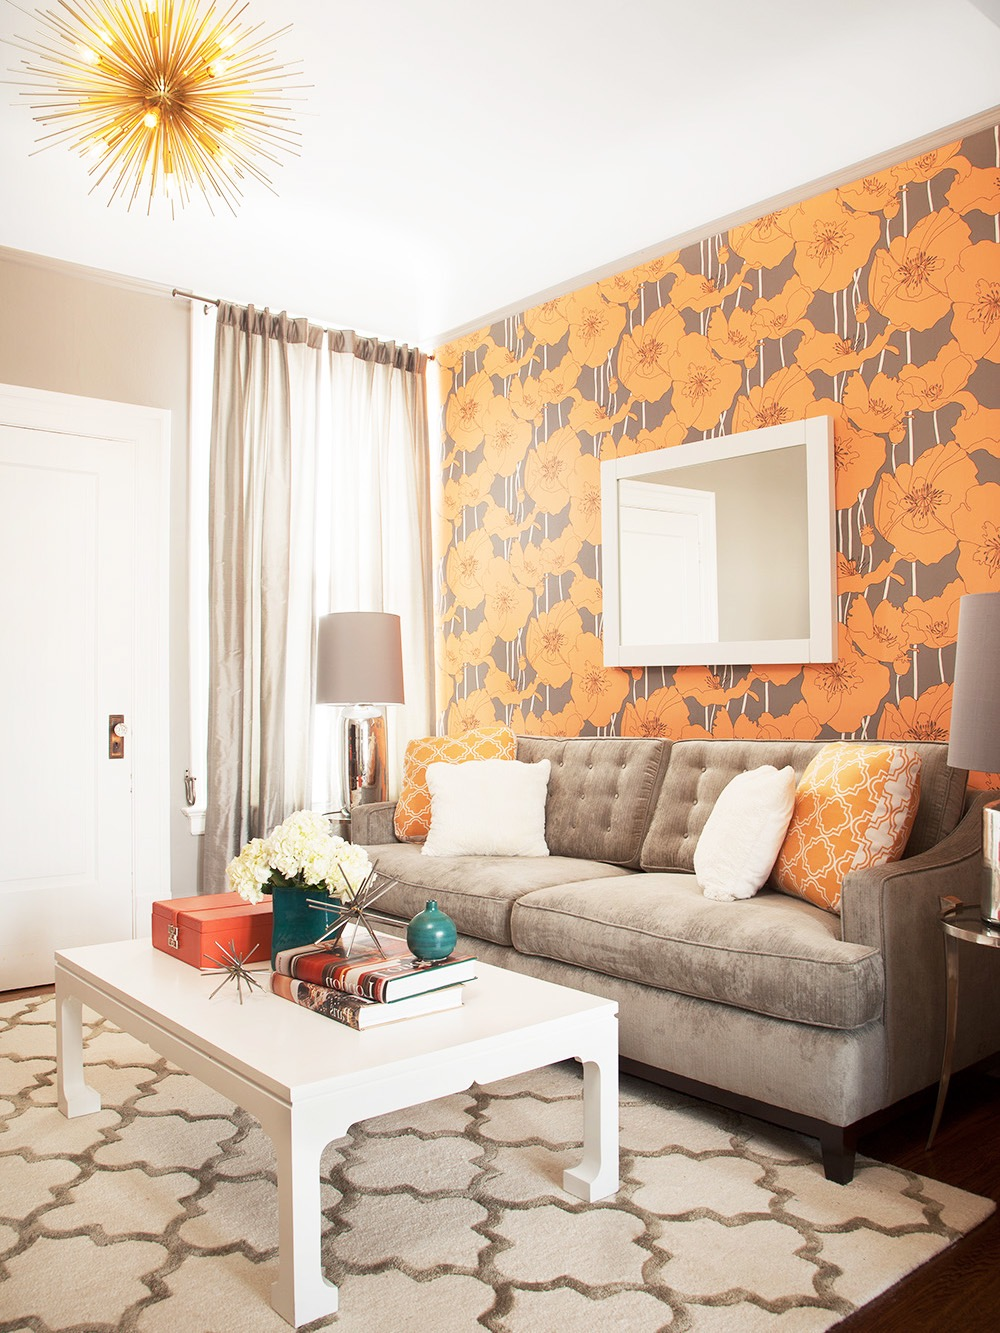 Graphic Wallpaper Orange And Gray Color Scheme For Small Living Room (Image 9 of 20)